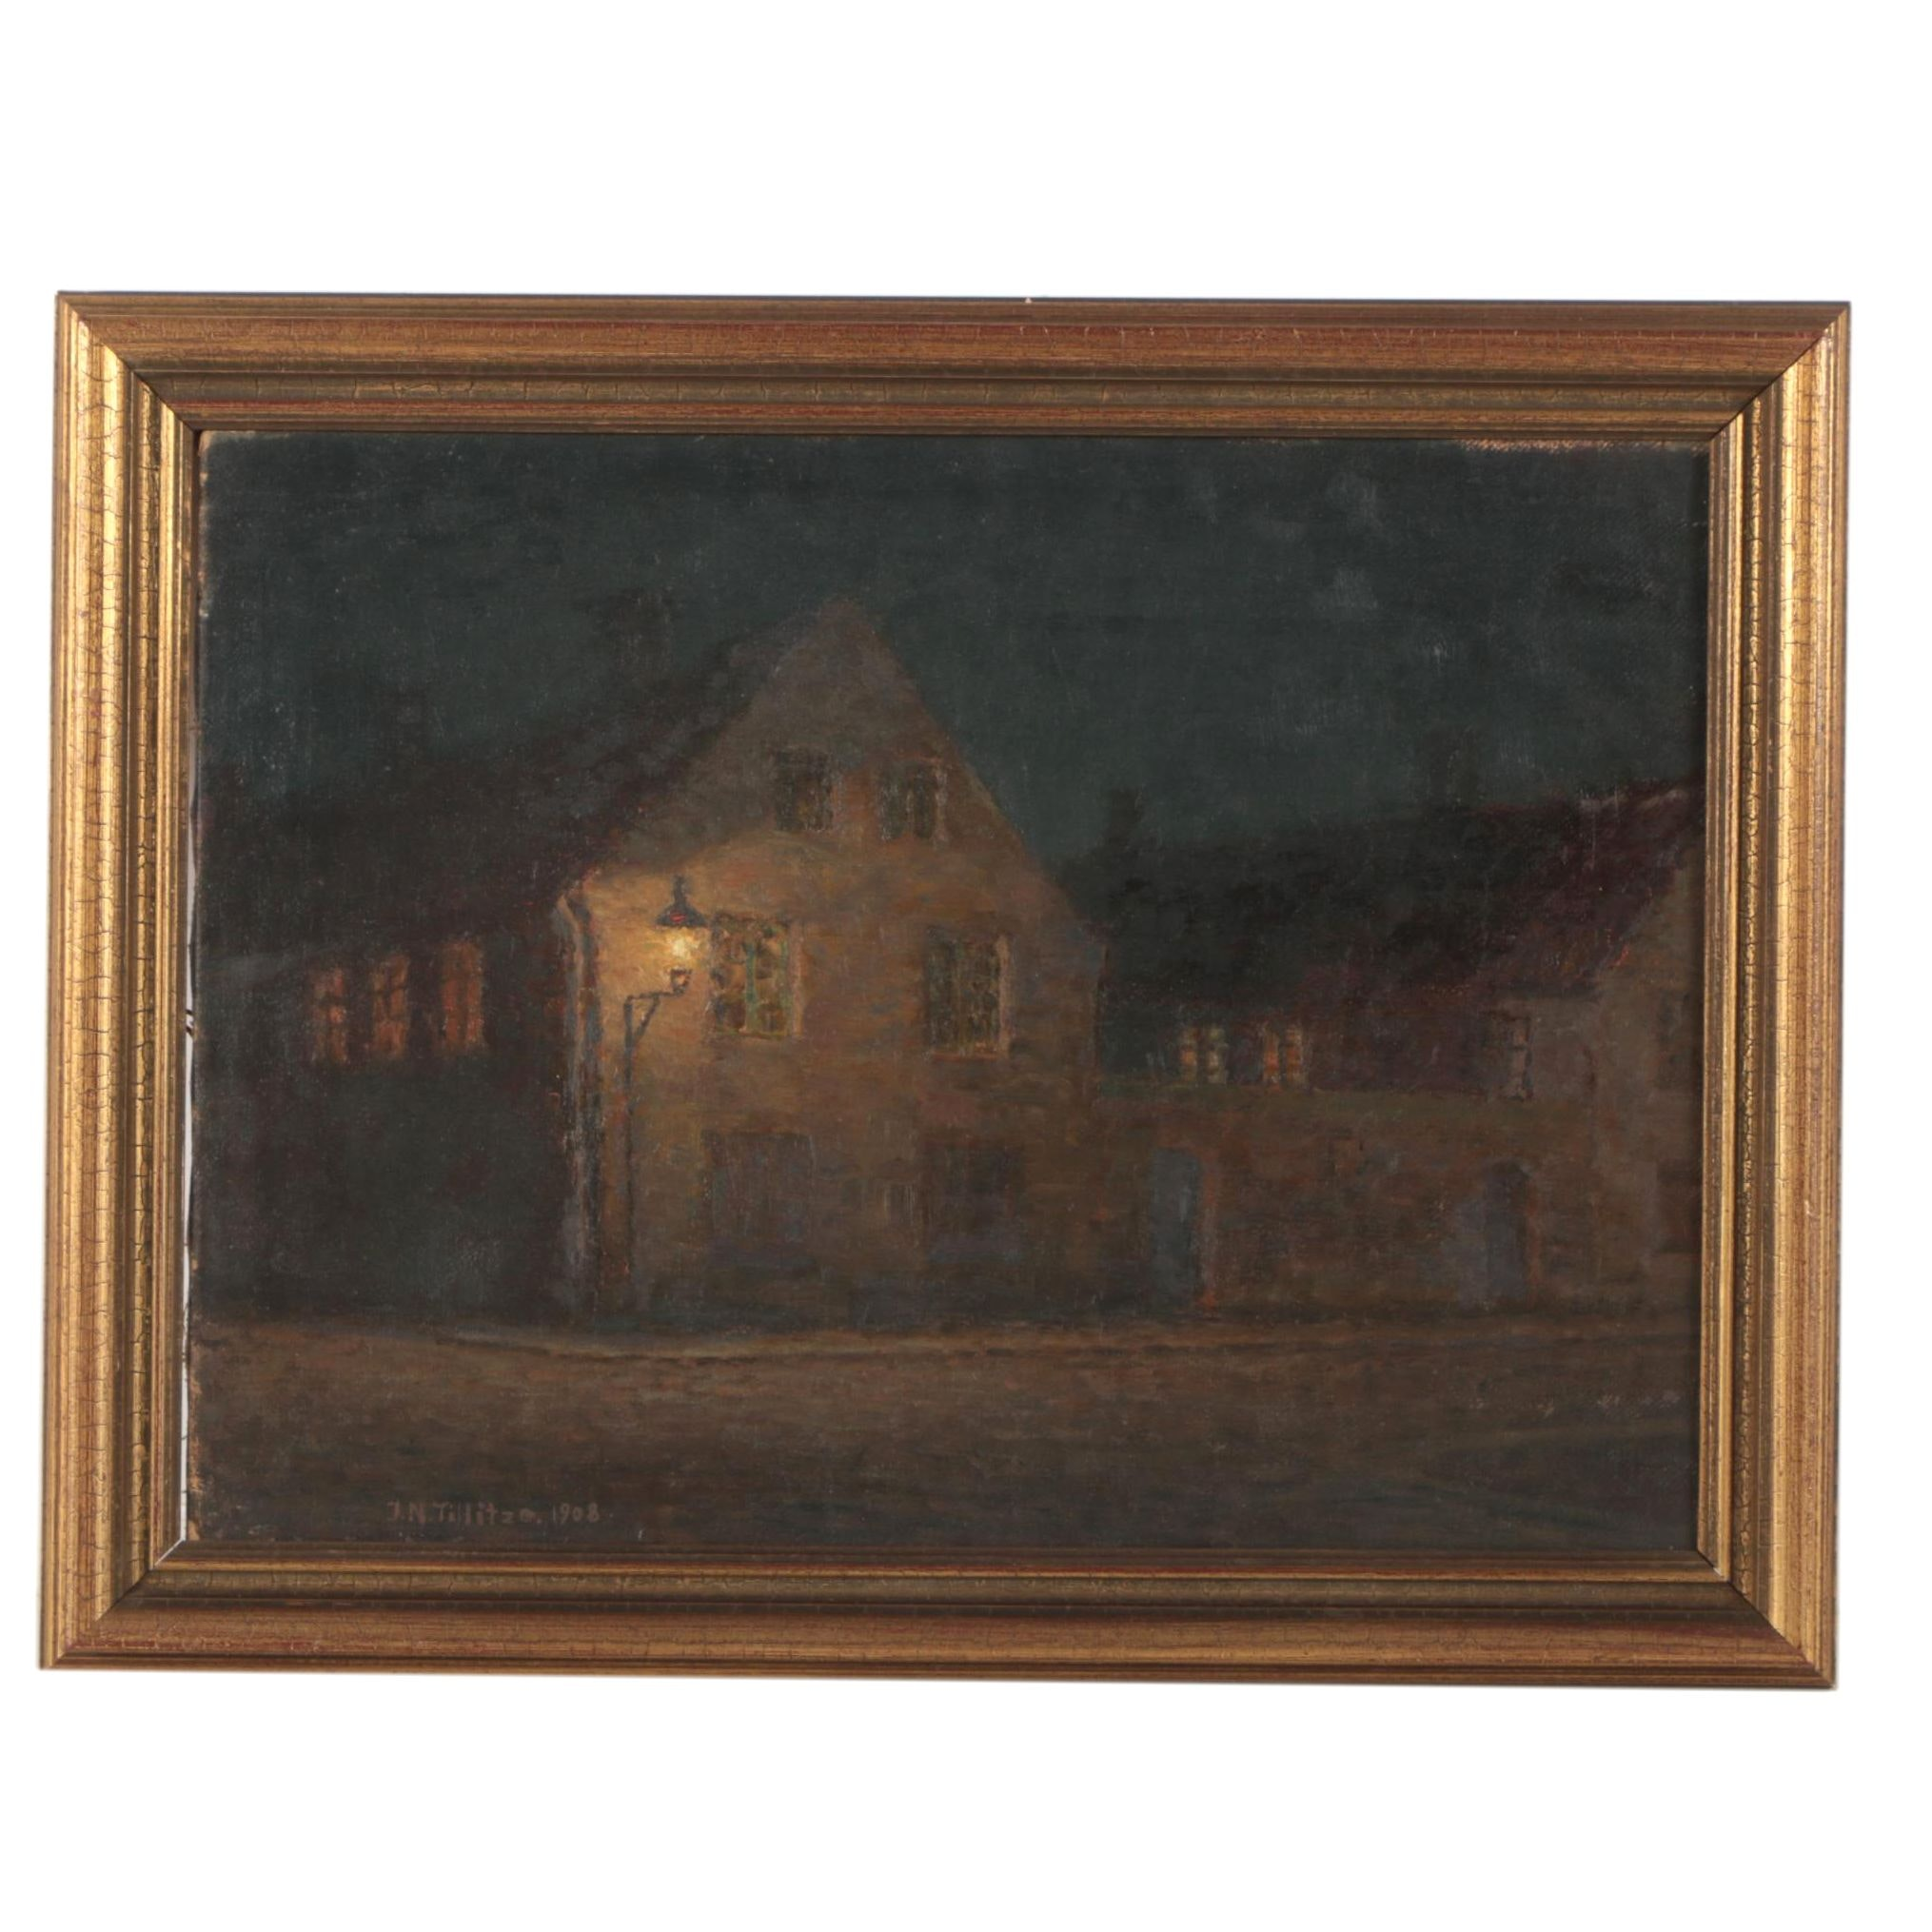 Johannes Nielsen Tillitze Oil Painting of House at Night